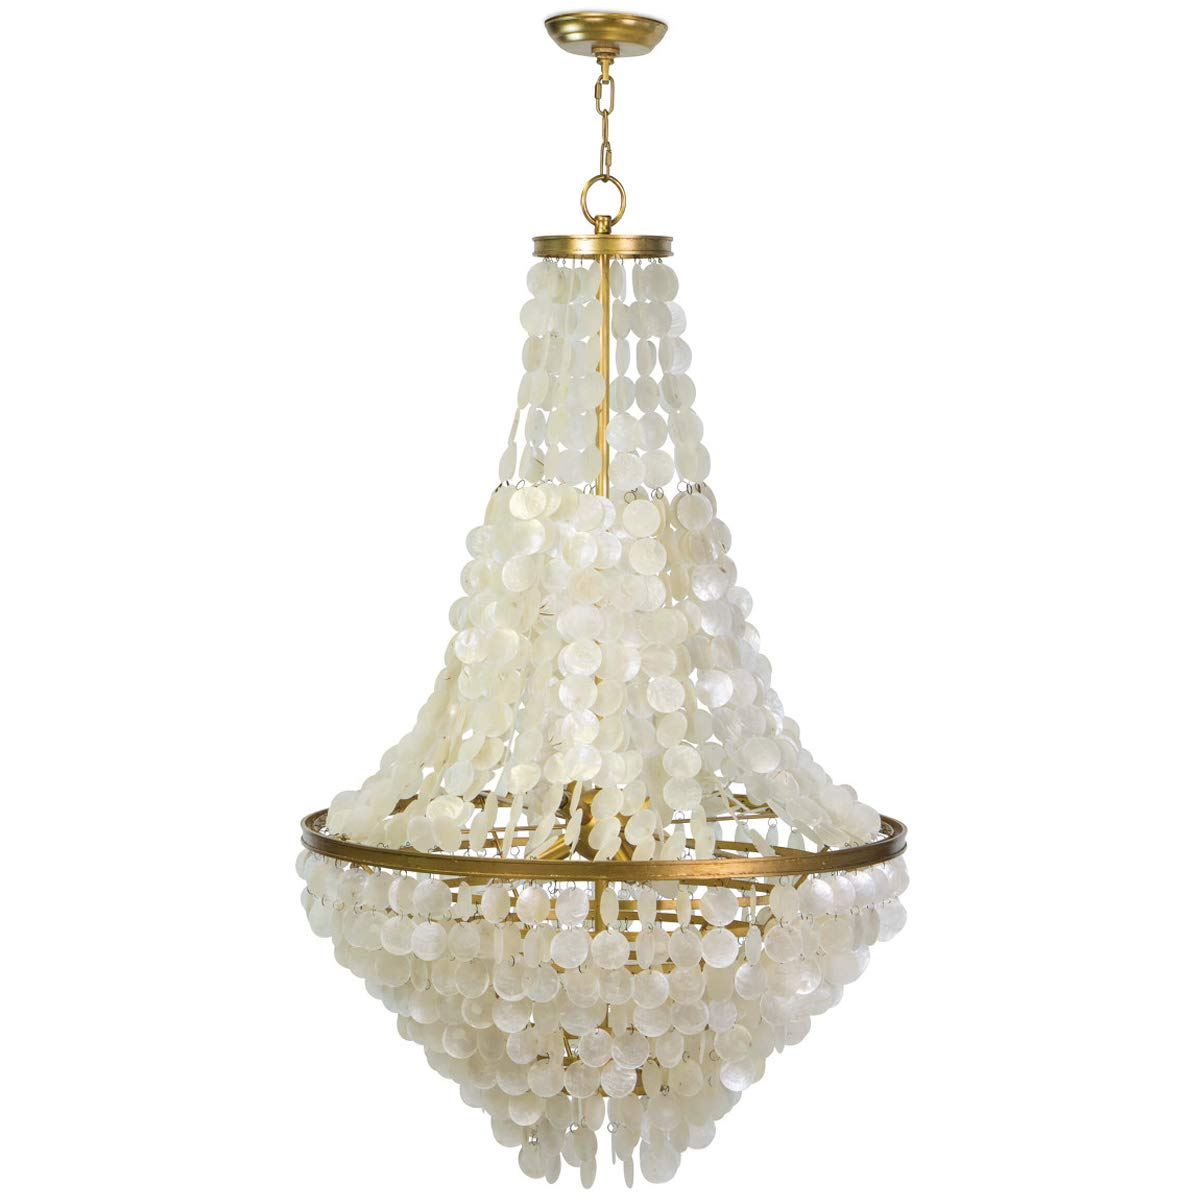 Regina Andrew Capiz Cascade Capiz Shell Chandelier | Ceiling Light Fixture with 6 Socket 40 Watts Max E12 Candelabra Base for a Bedroom or Dining Room